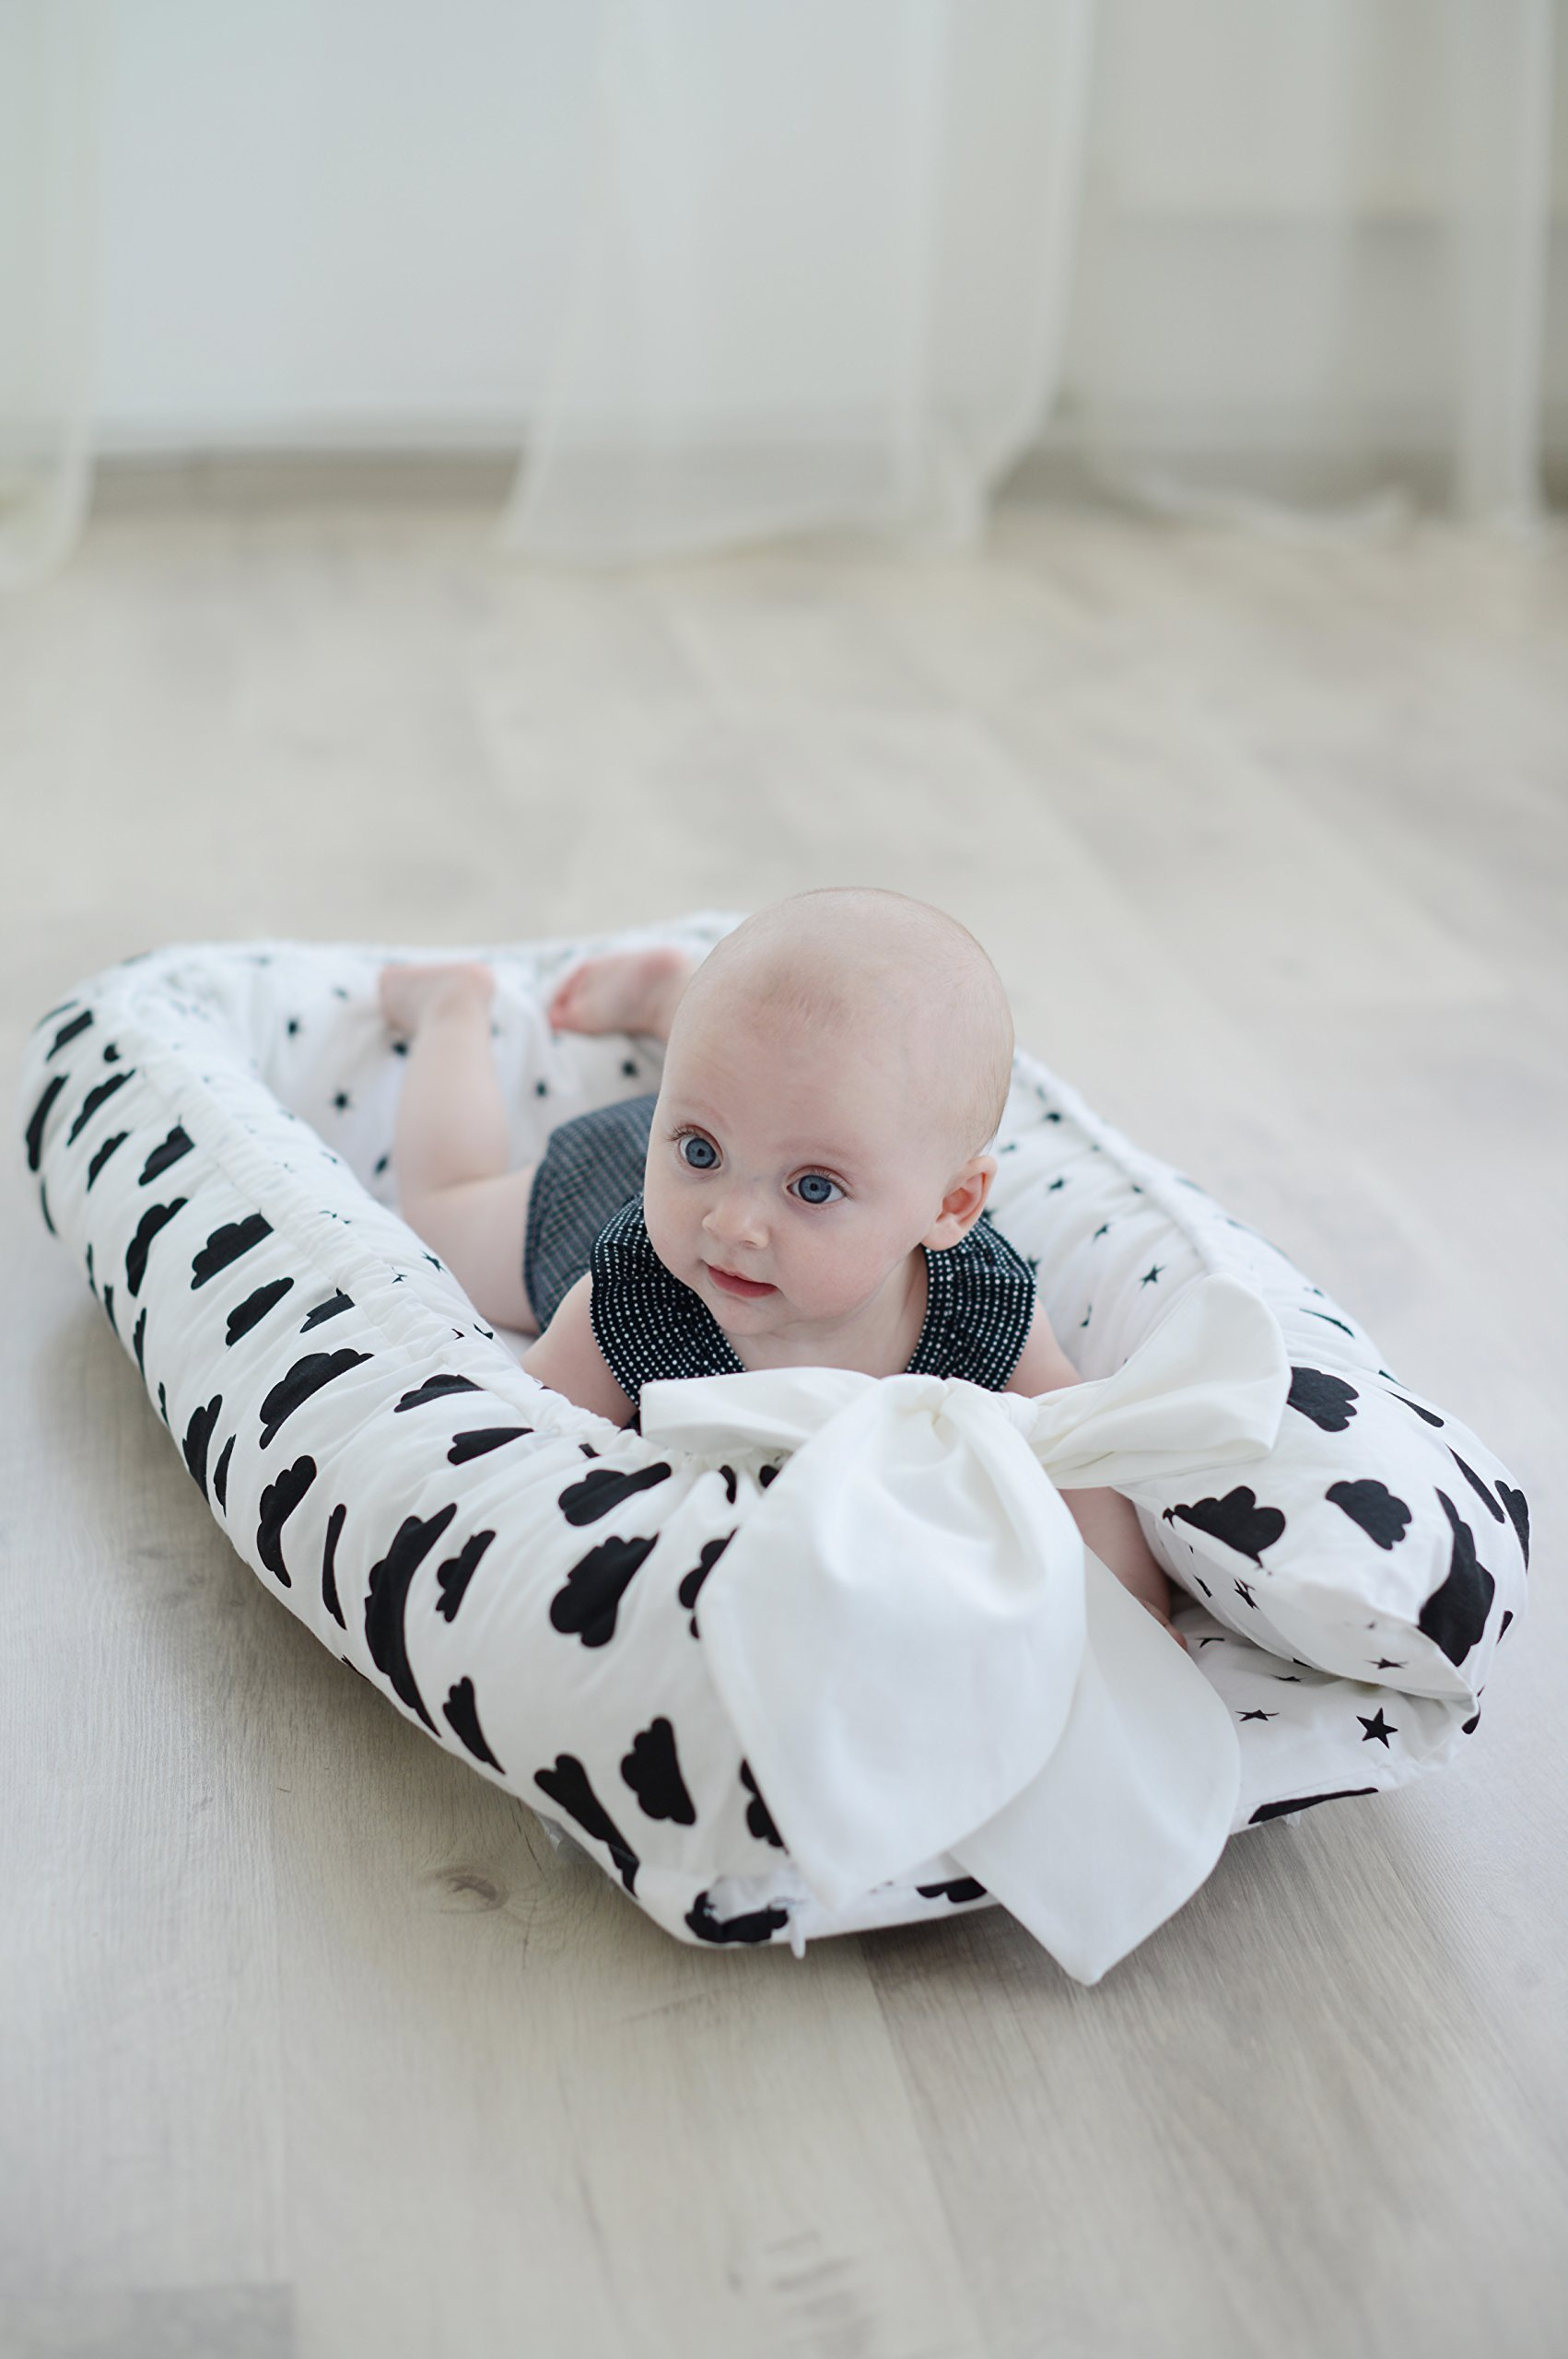 Baby Nest Baby Bed White Cotton Portable Crib Baby Gift Nursery